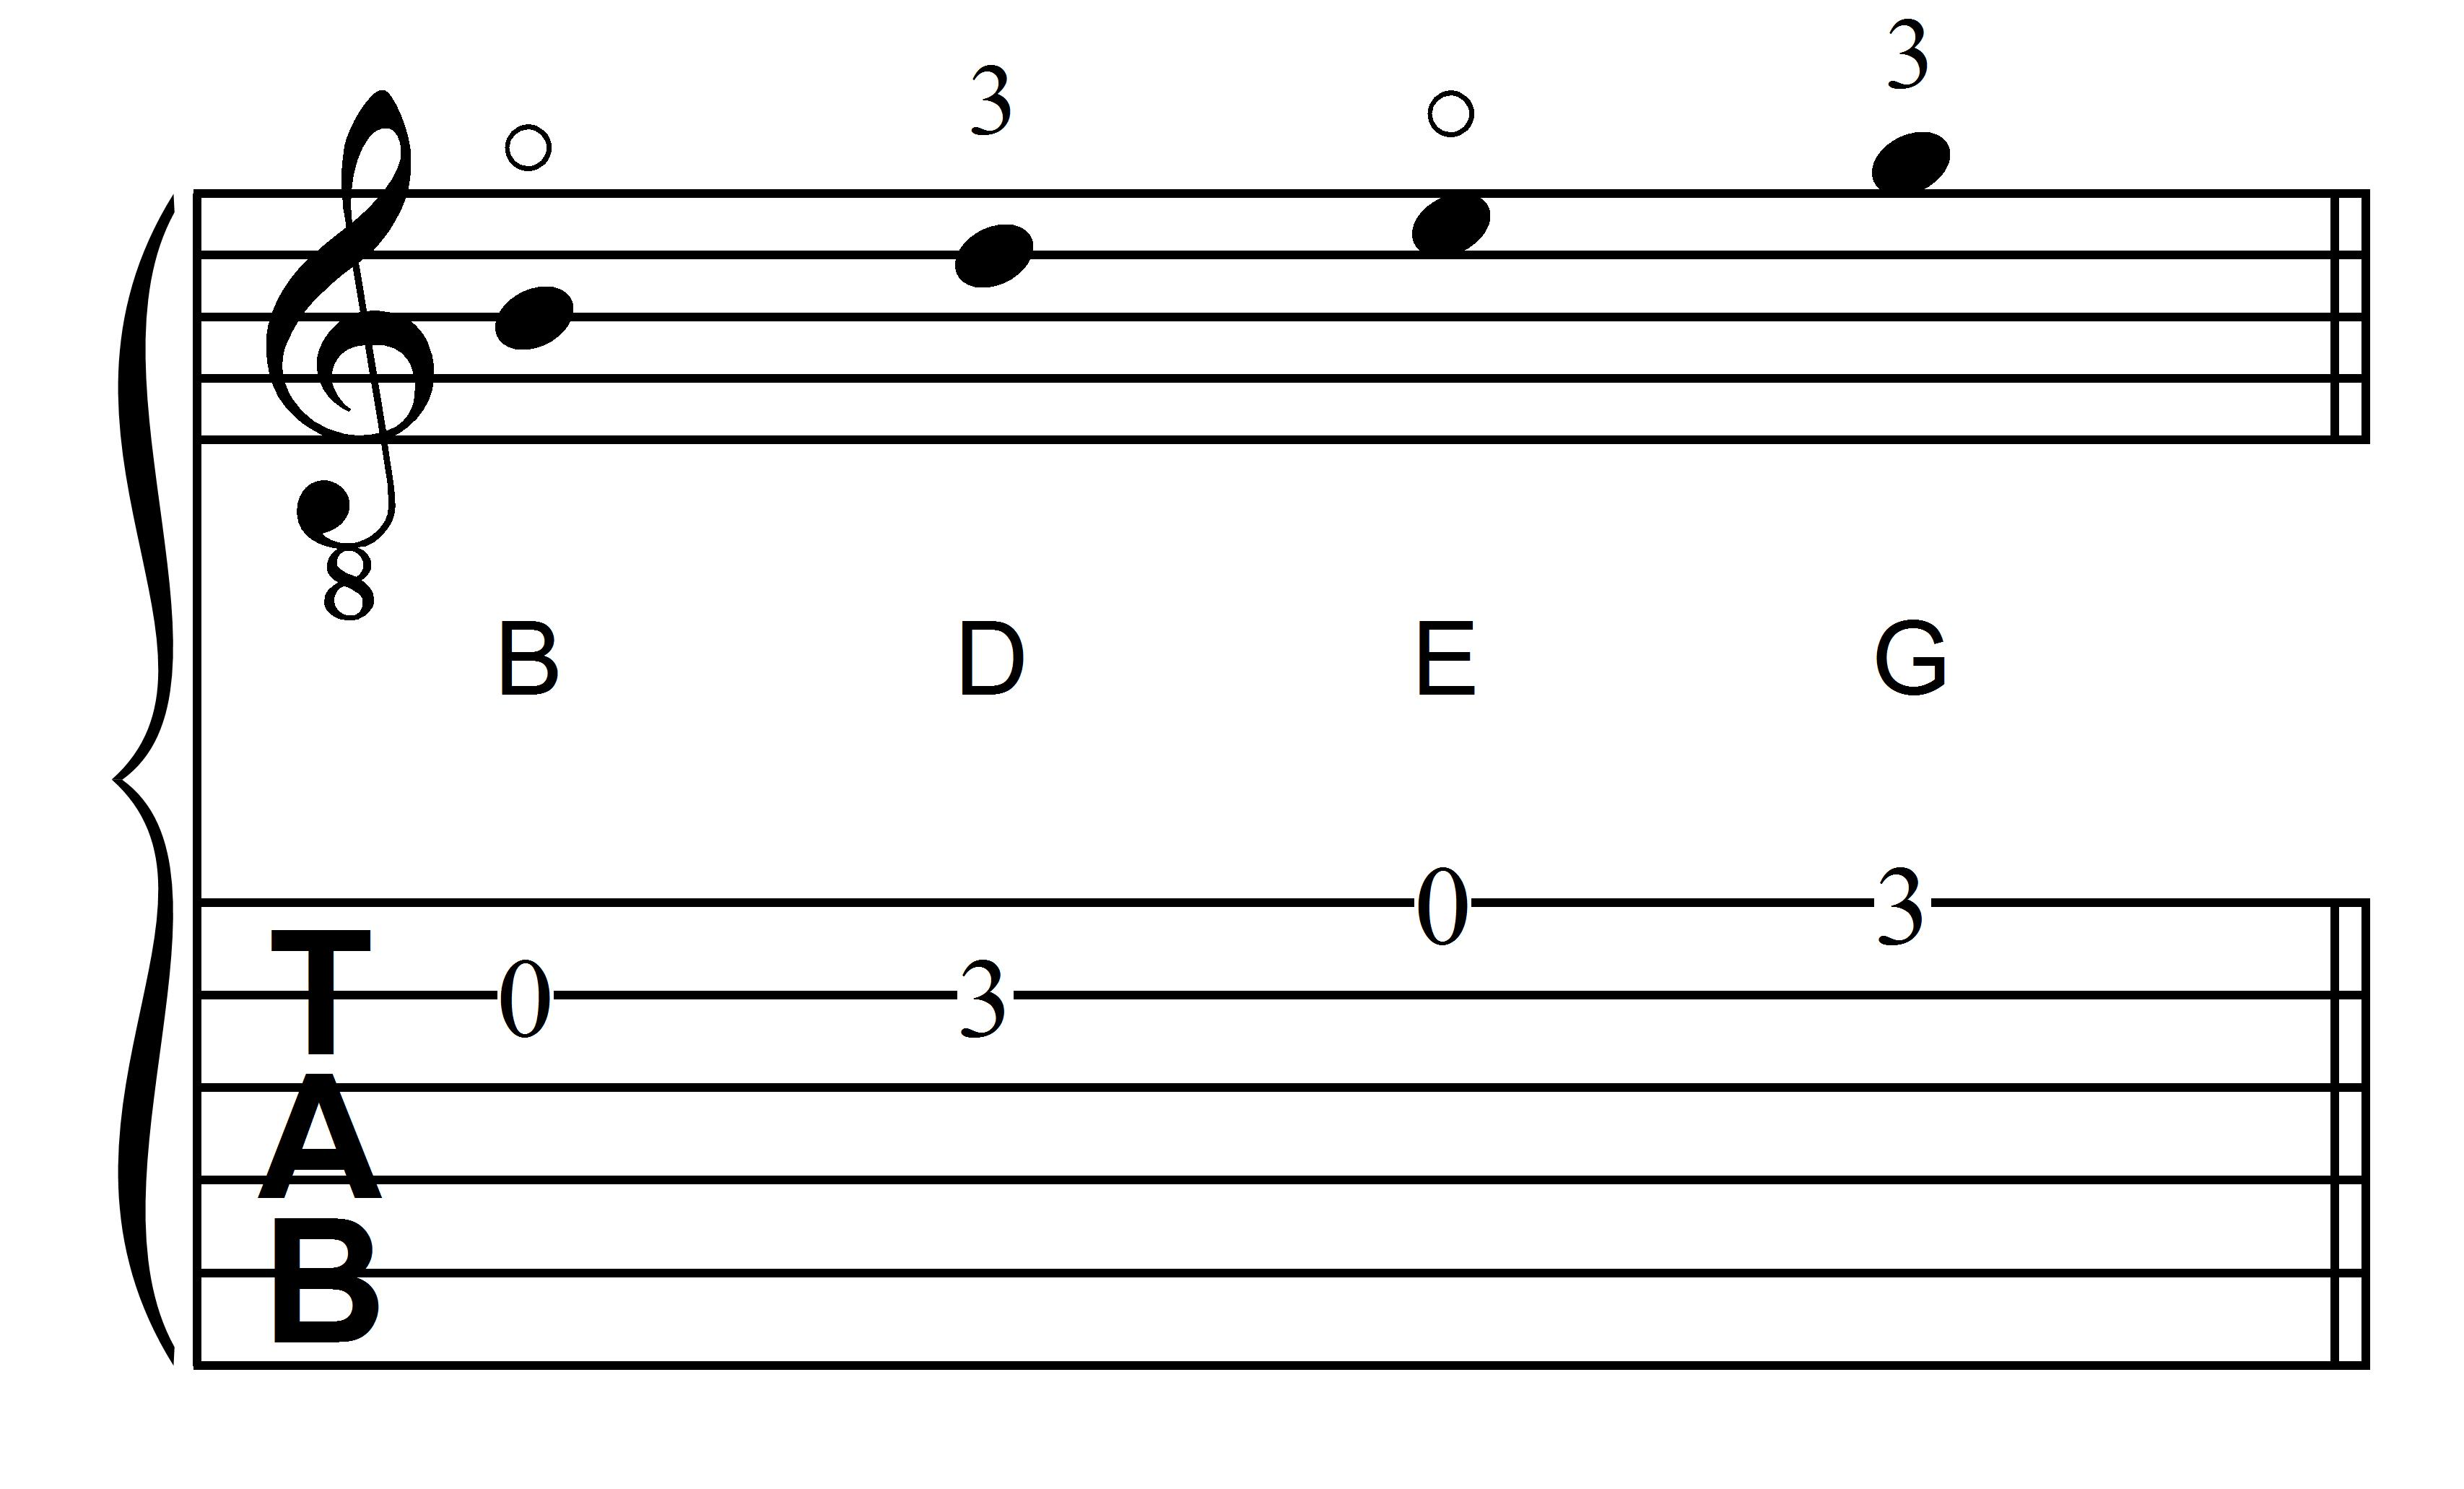 The Notes B, D, E, and G in First Position on the First Two Strings of the Guitar